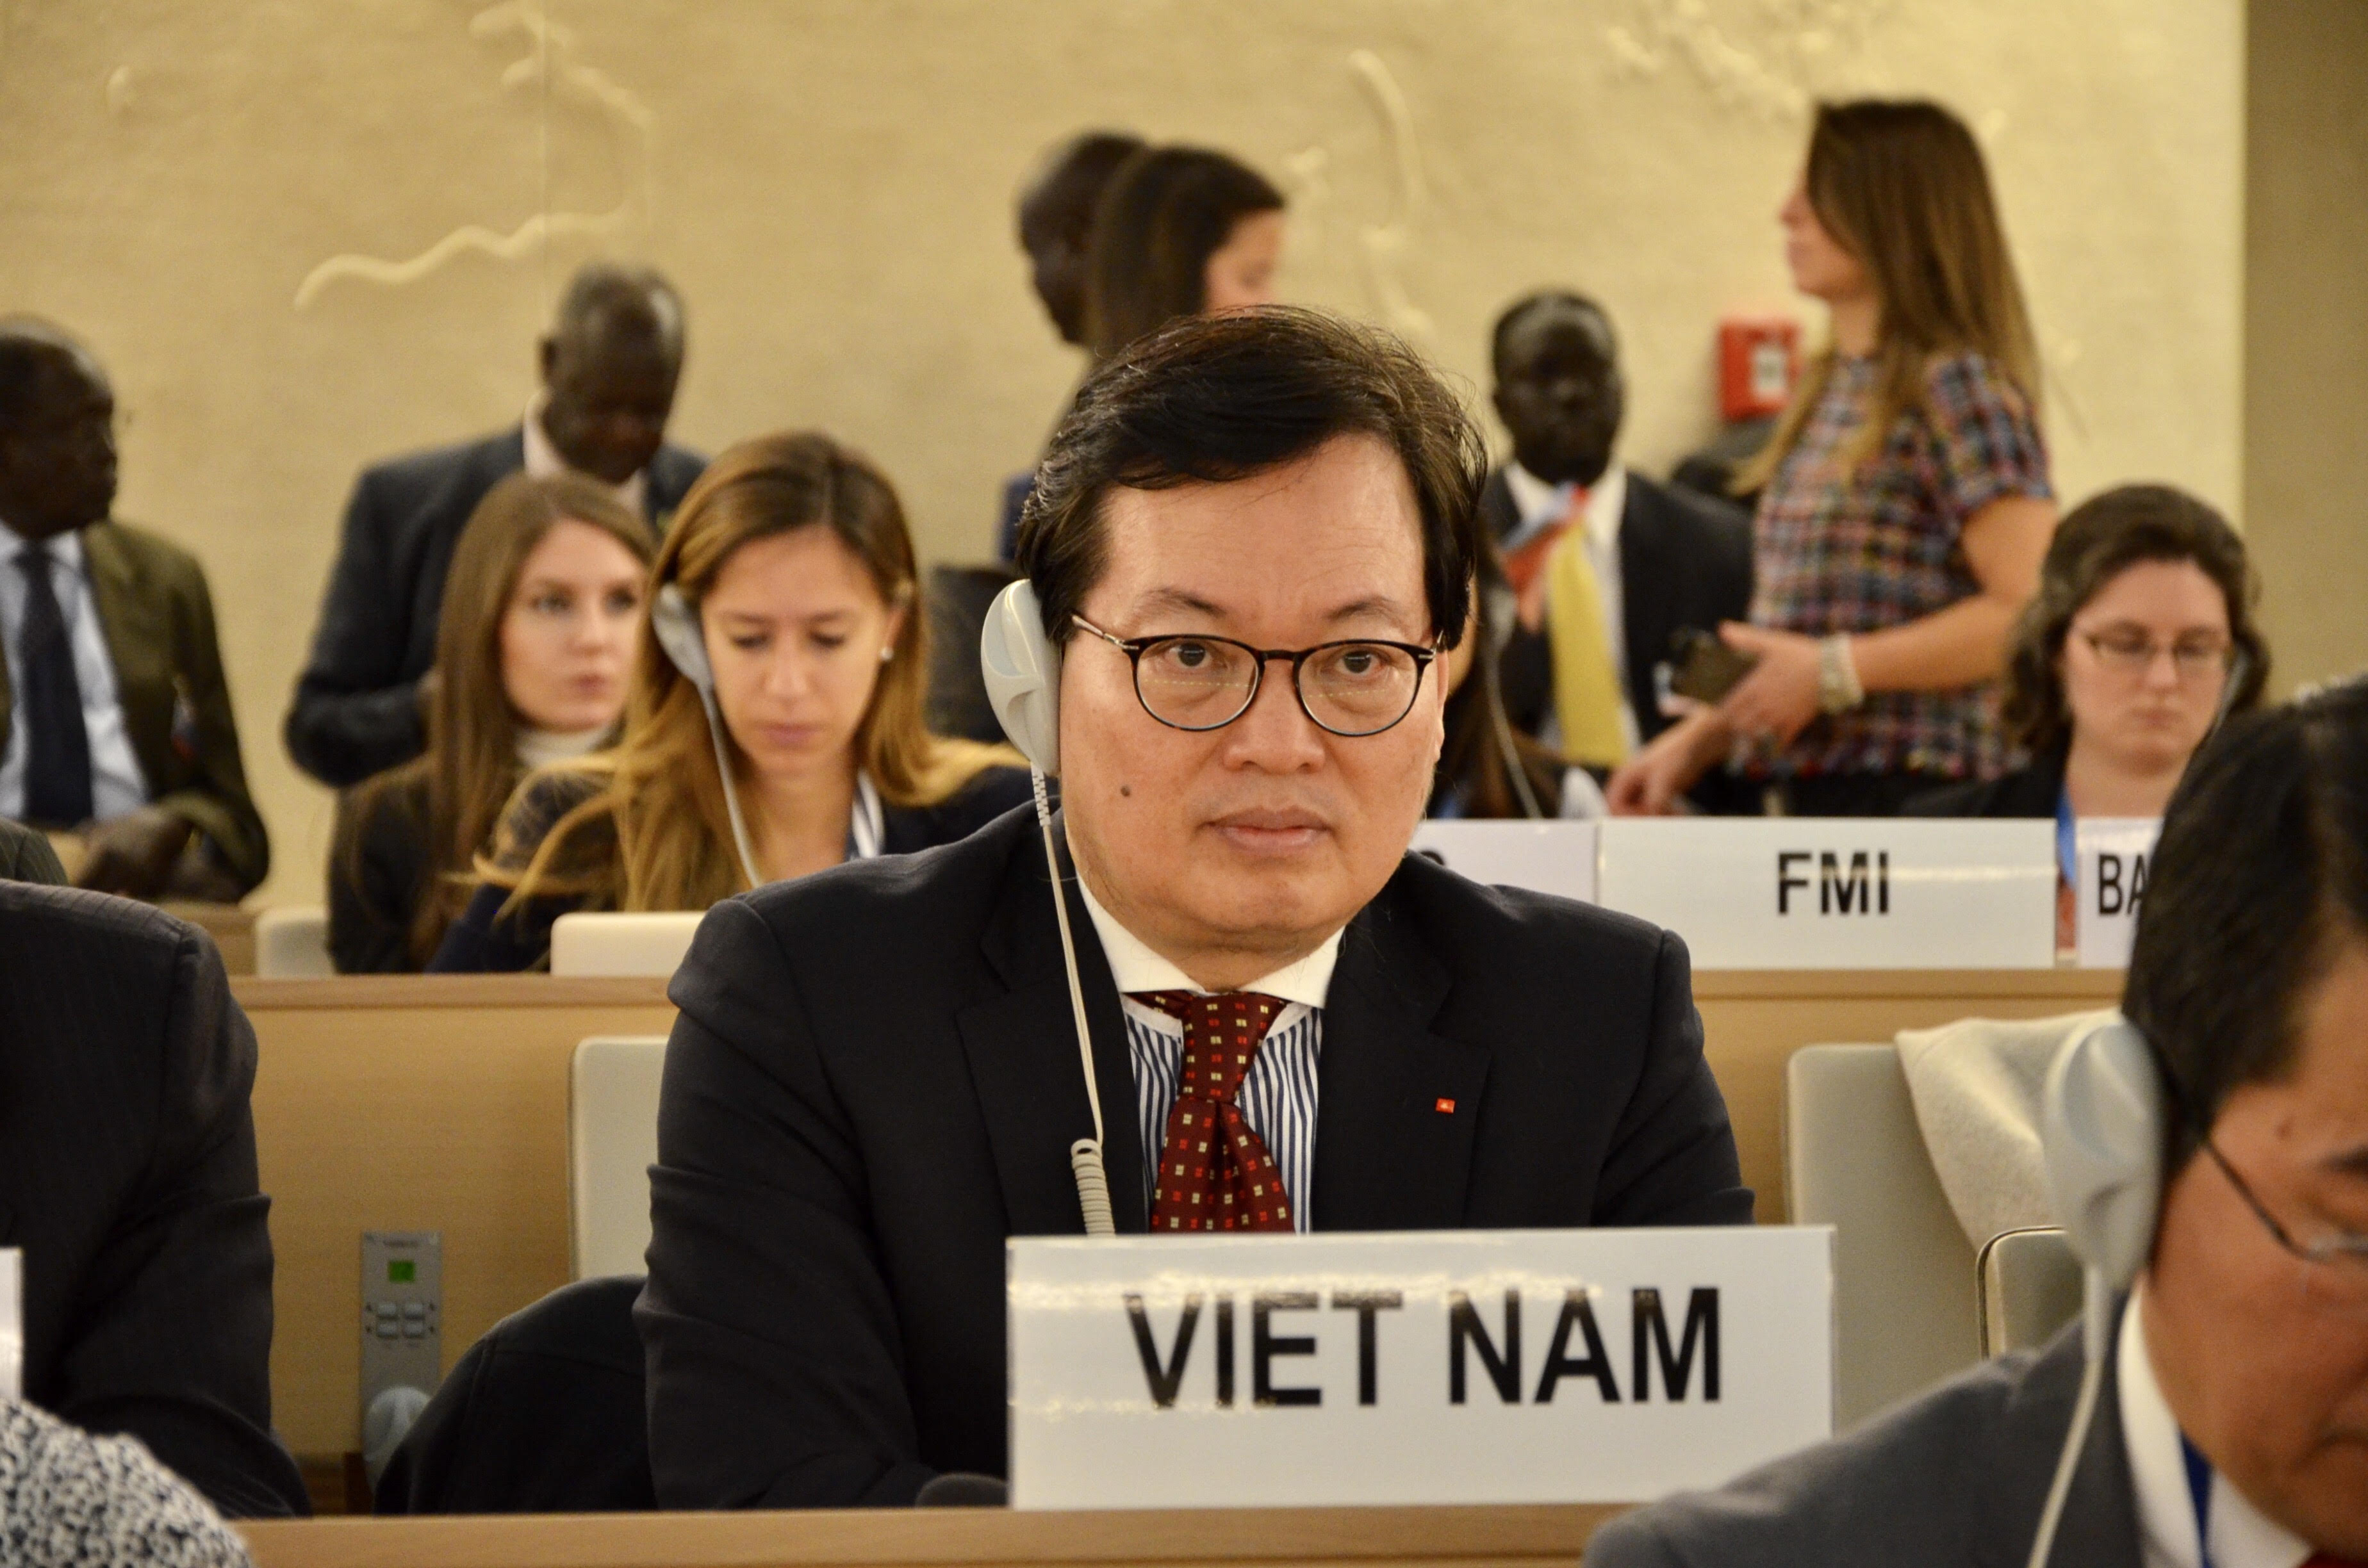 35th session of UN Human Rights Council